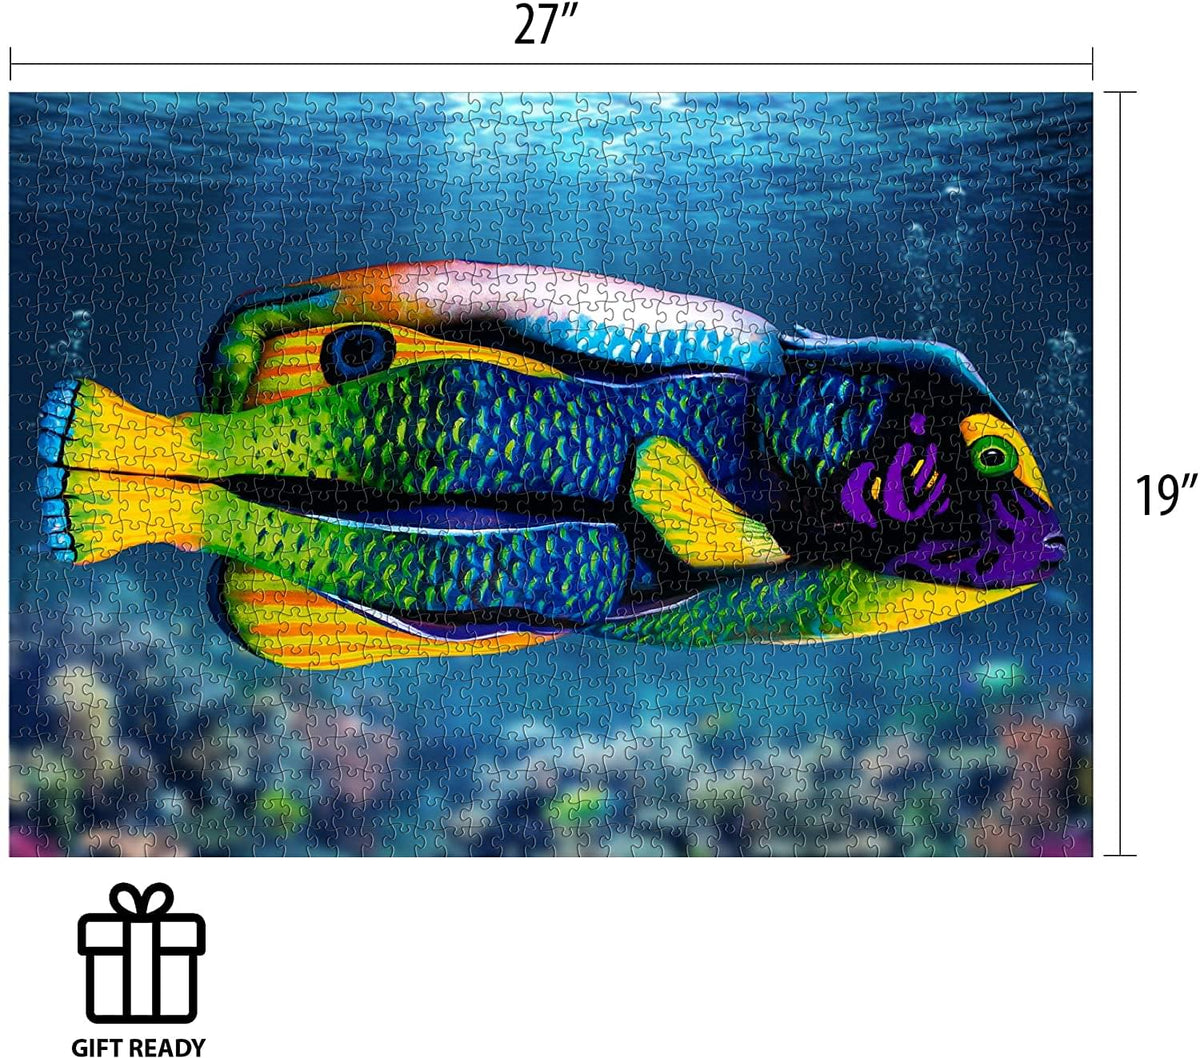 Johannes Stotter Angel Fish Body Art 1000 Piece Jigsaw Puzzle